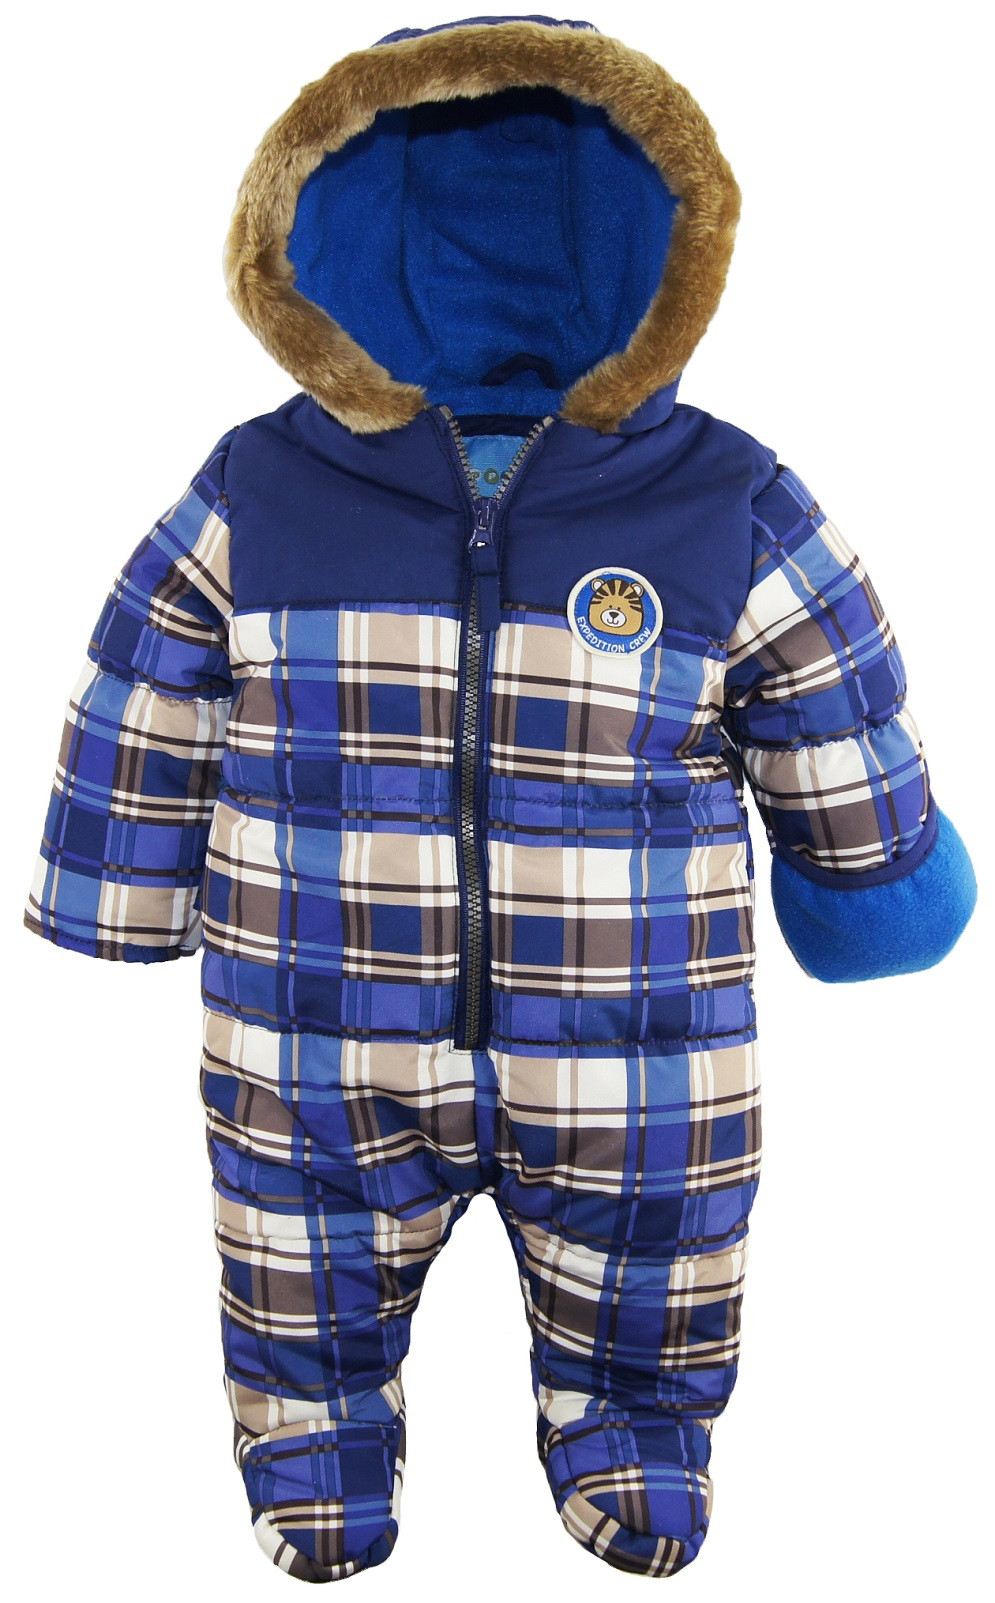 b9fb1d5c8fc8 Wippette Baby Boys  Teddy Bear Microfiber Footed 1-Piece Puffer ...